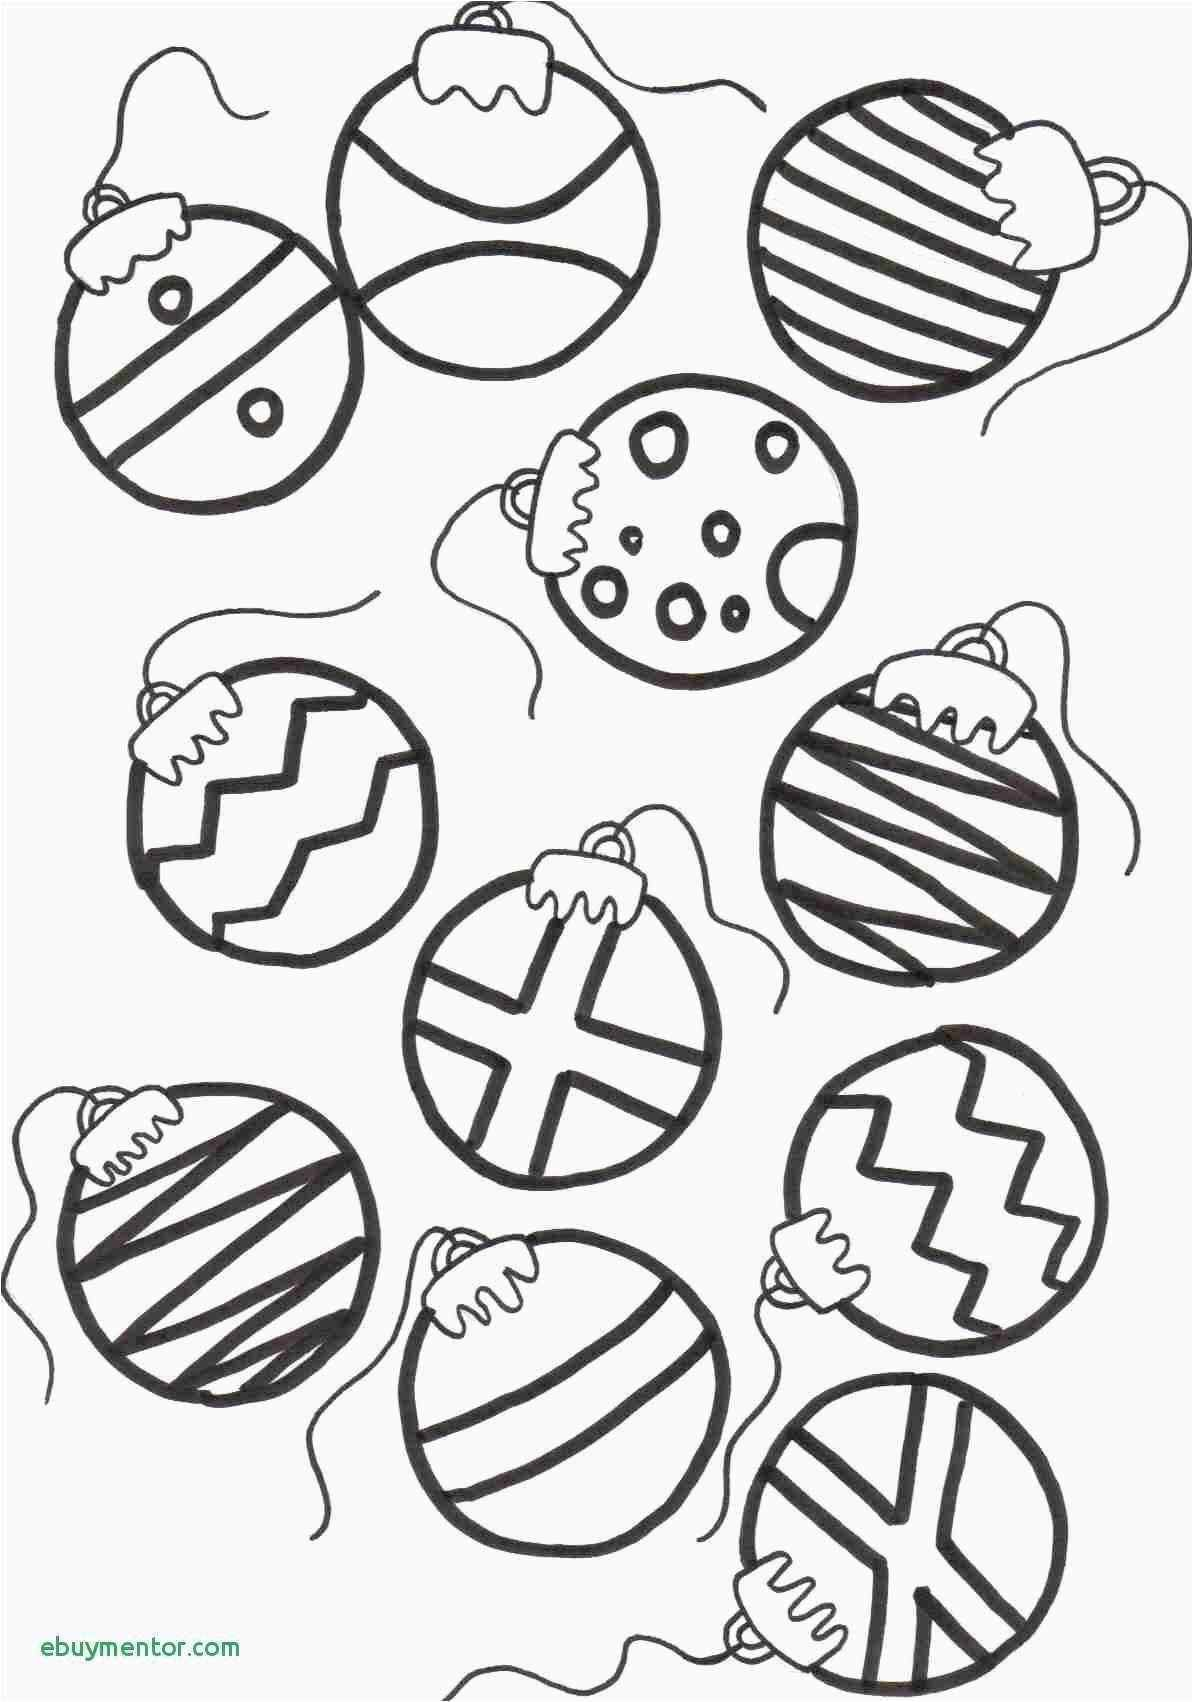 10 Inspirational Christmas Decoration Clipart Black And White Ideas Prekhome Christmas Tree Coloring Page Christmas Ornament Coloring Page Easy Christmas Drawings